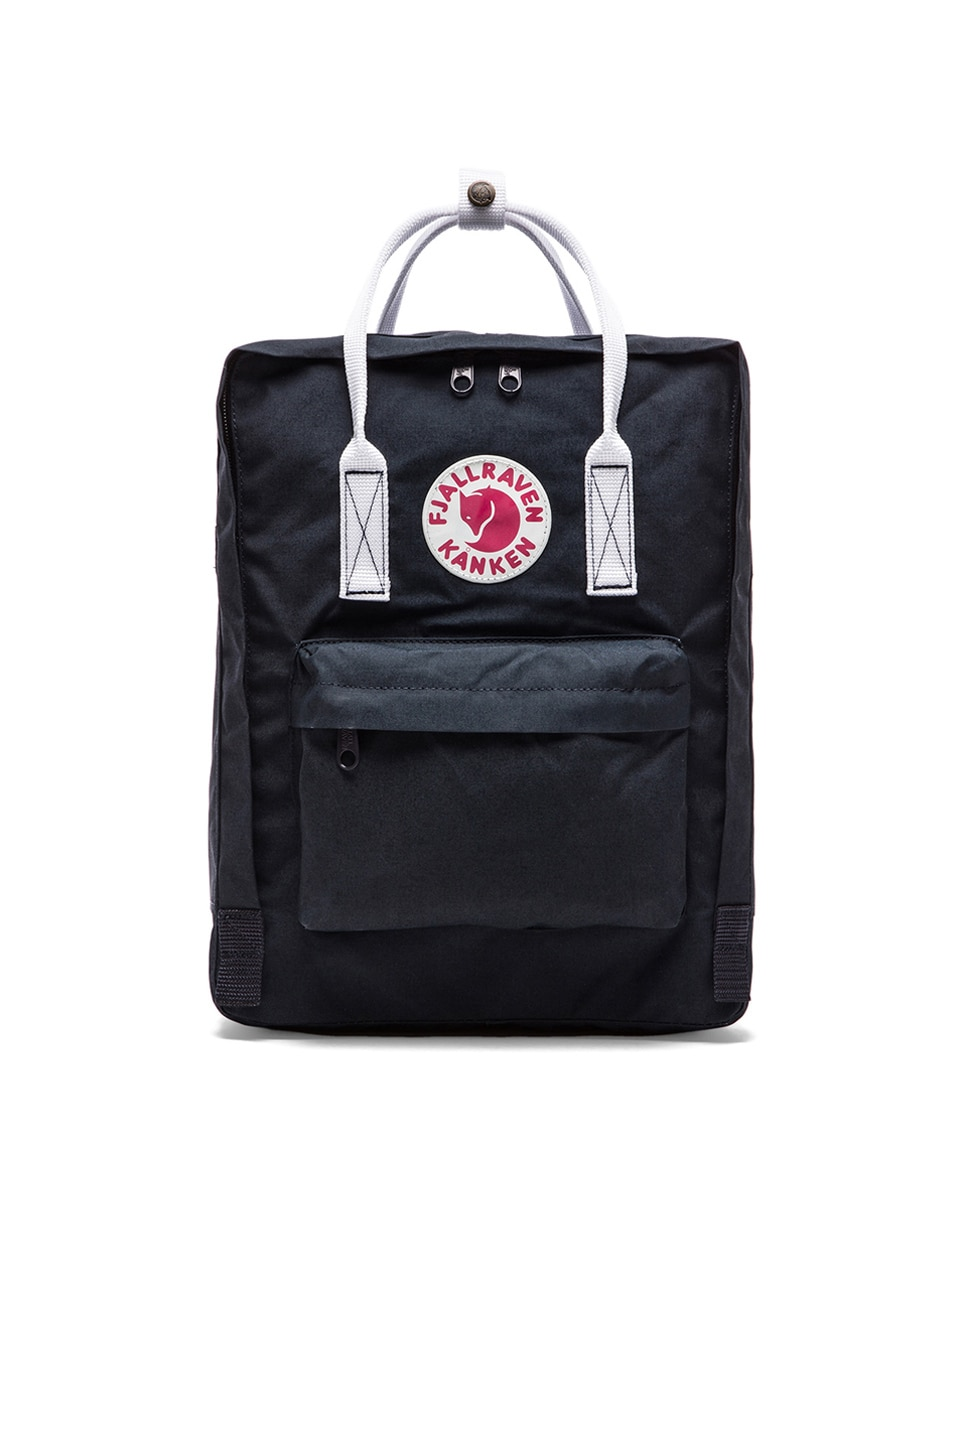 Fjallraven Kanken in Navy & White